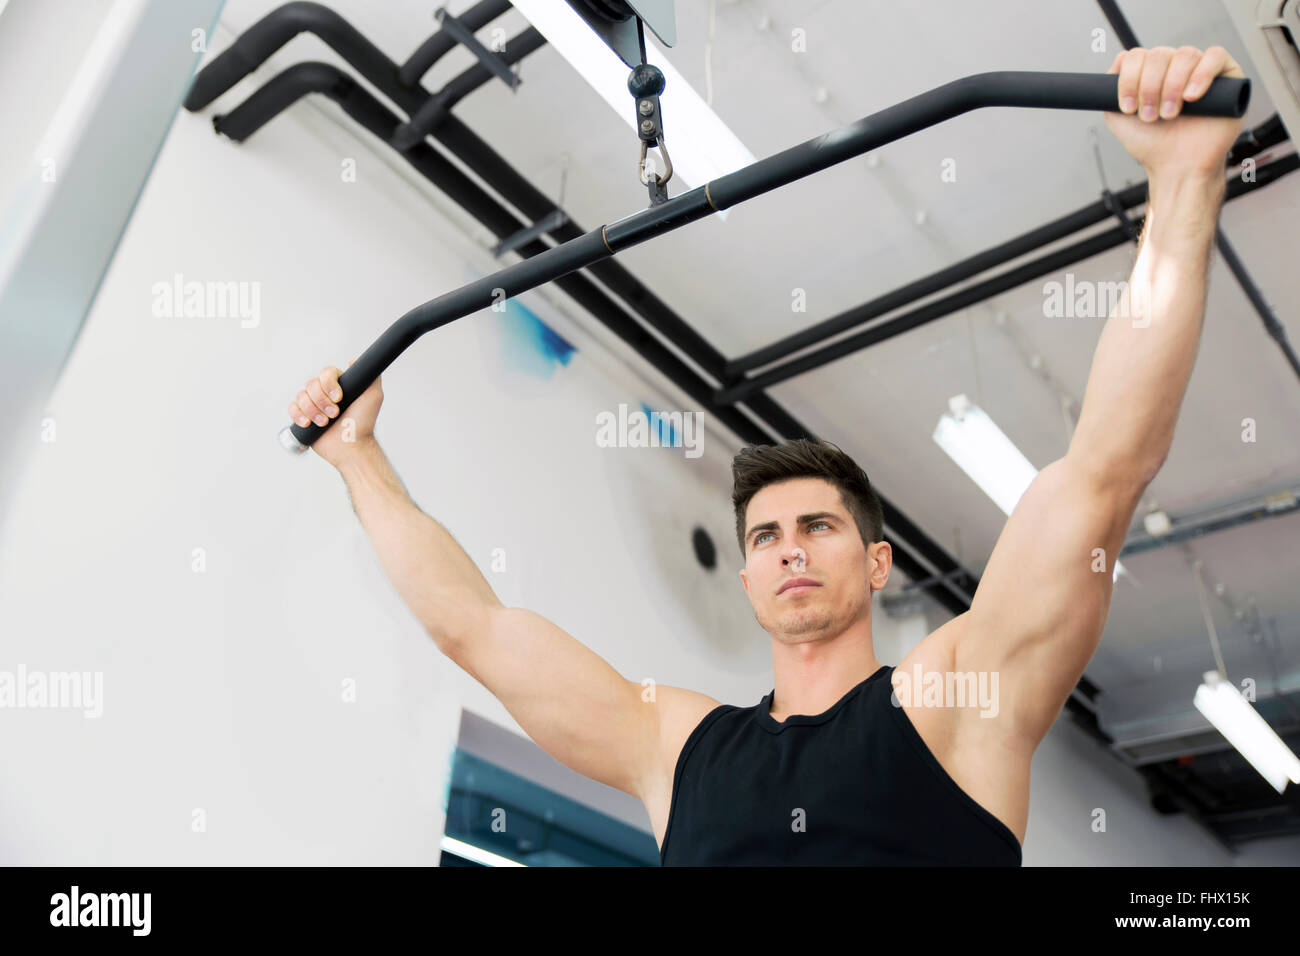 Handsome man working out in gym - Stock Image